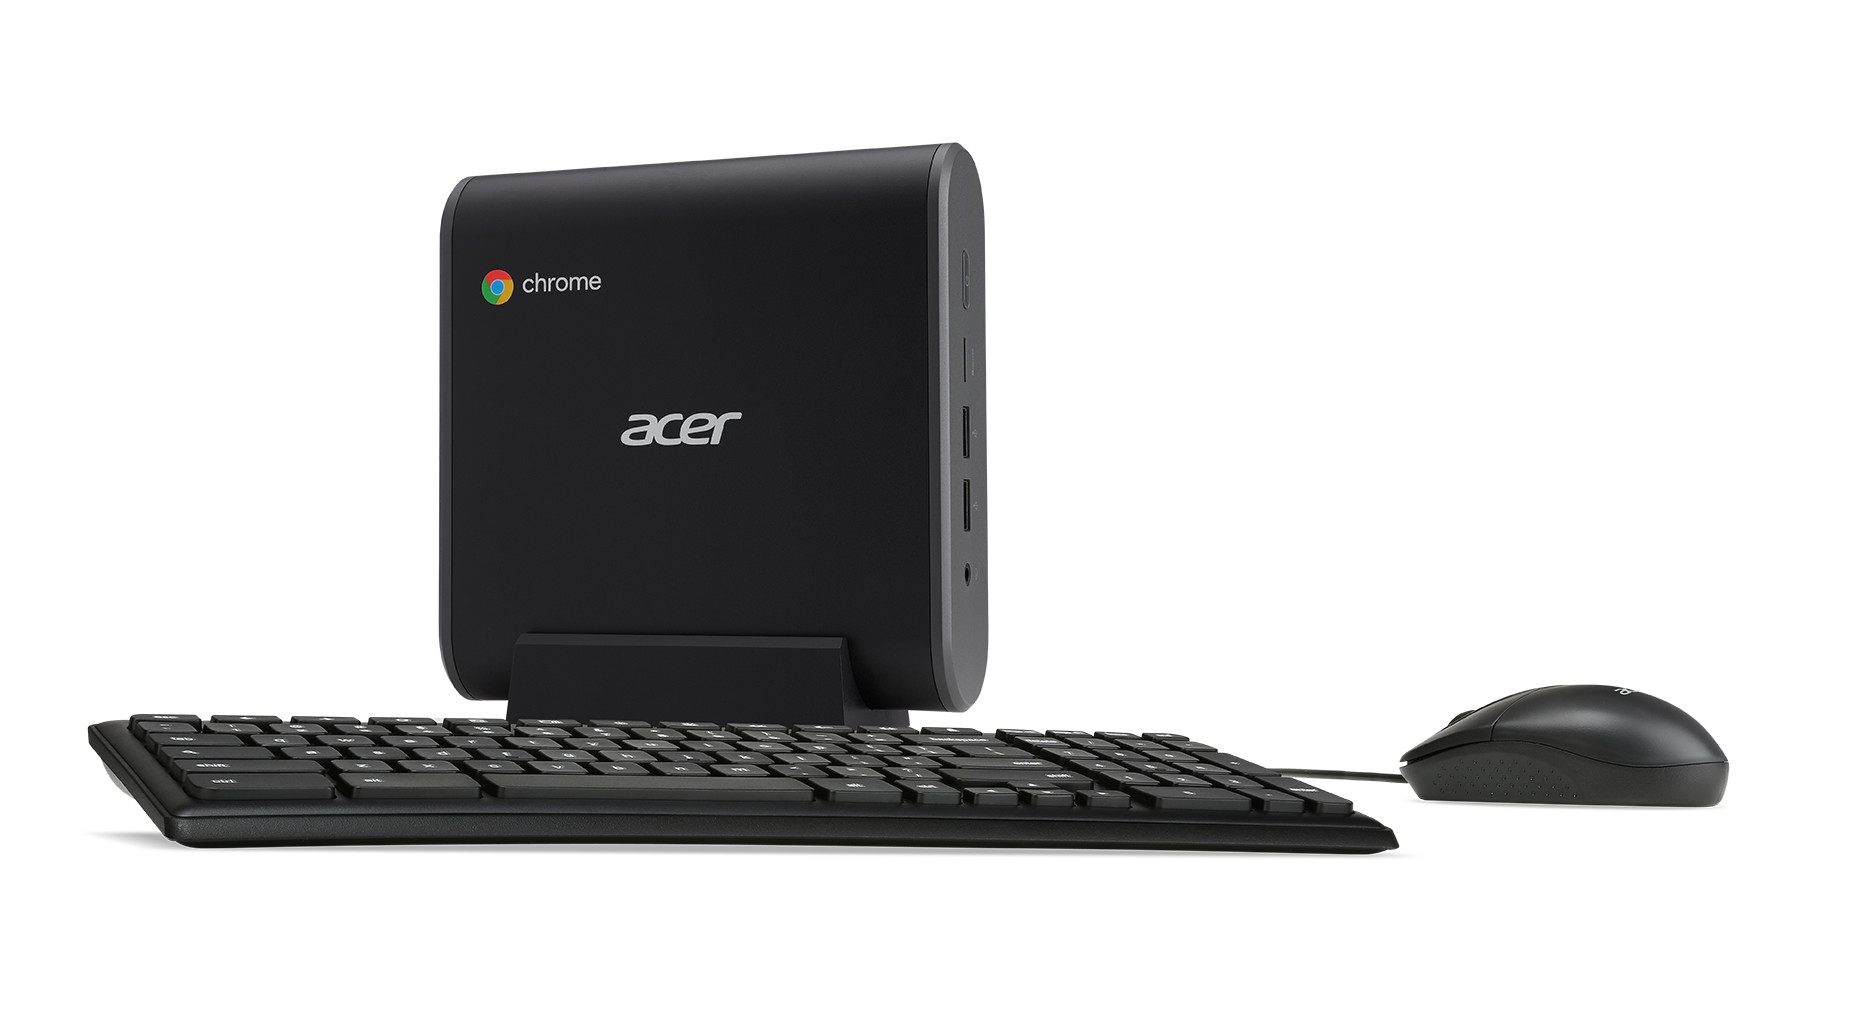 Acer's new convertible Chromebook Spin 11 can run Android applications